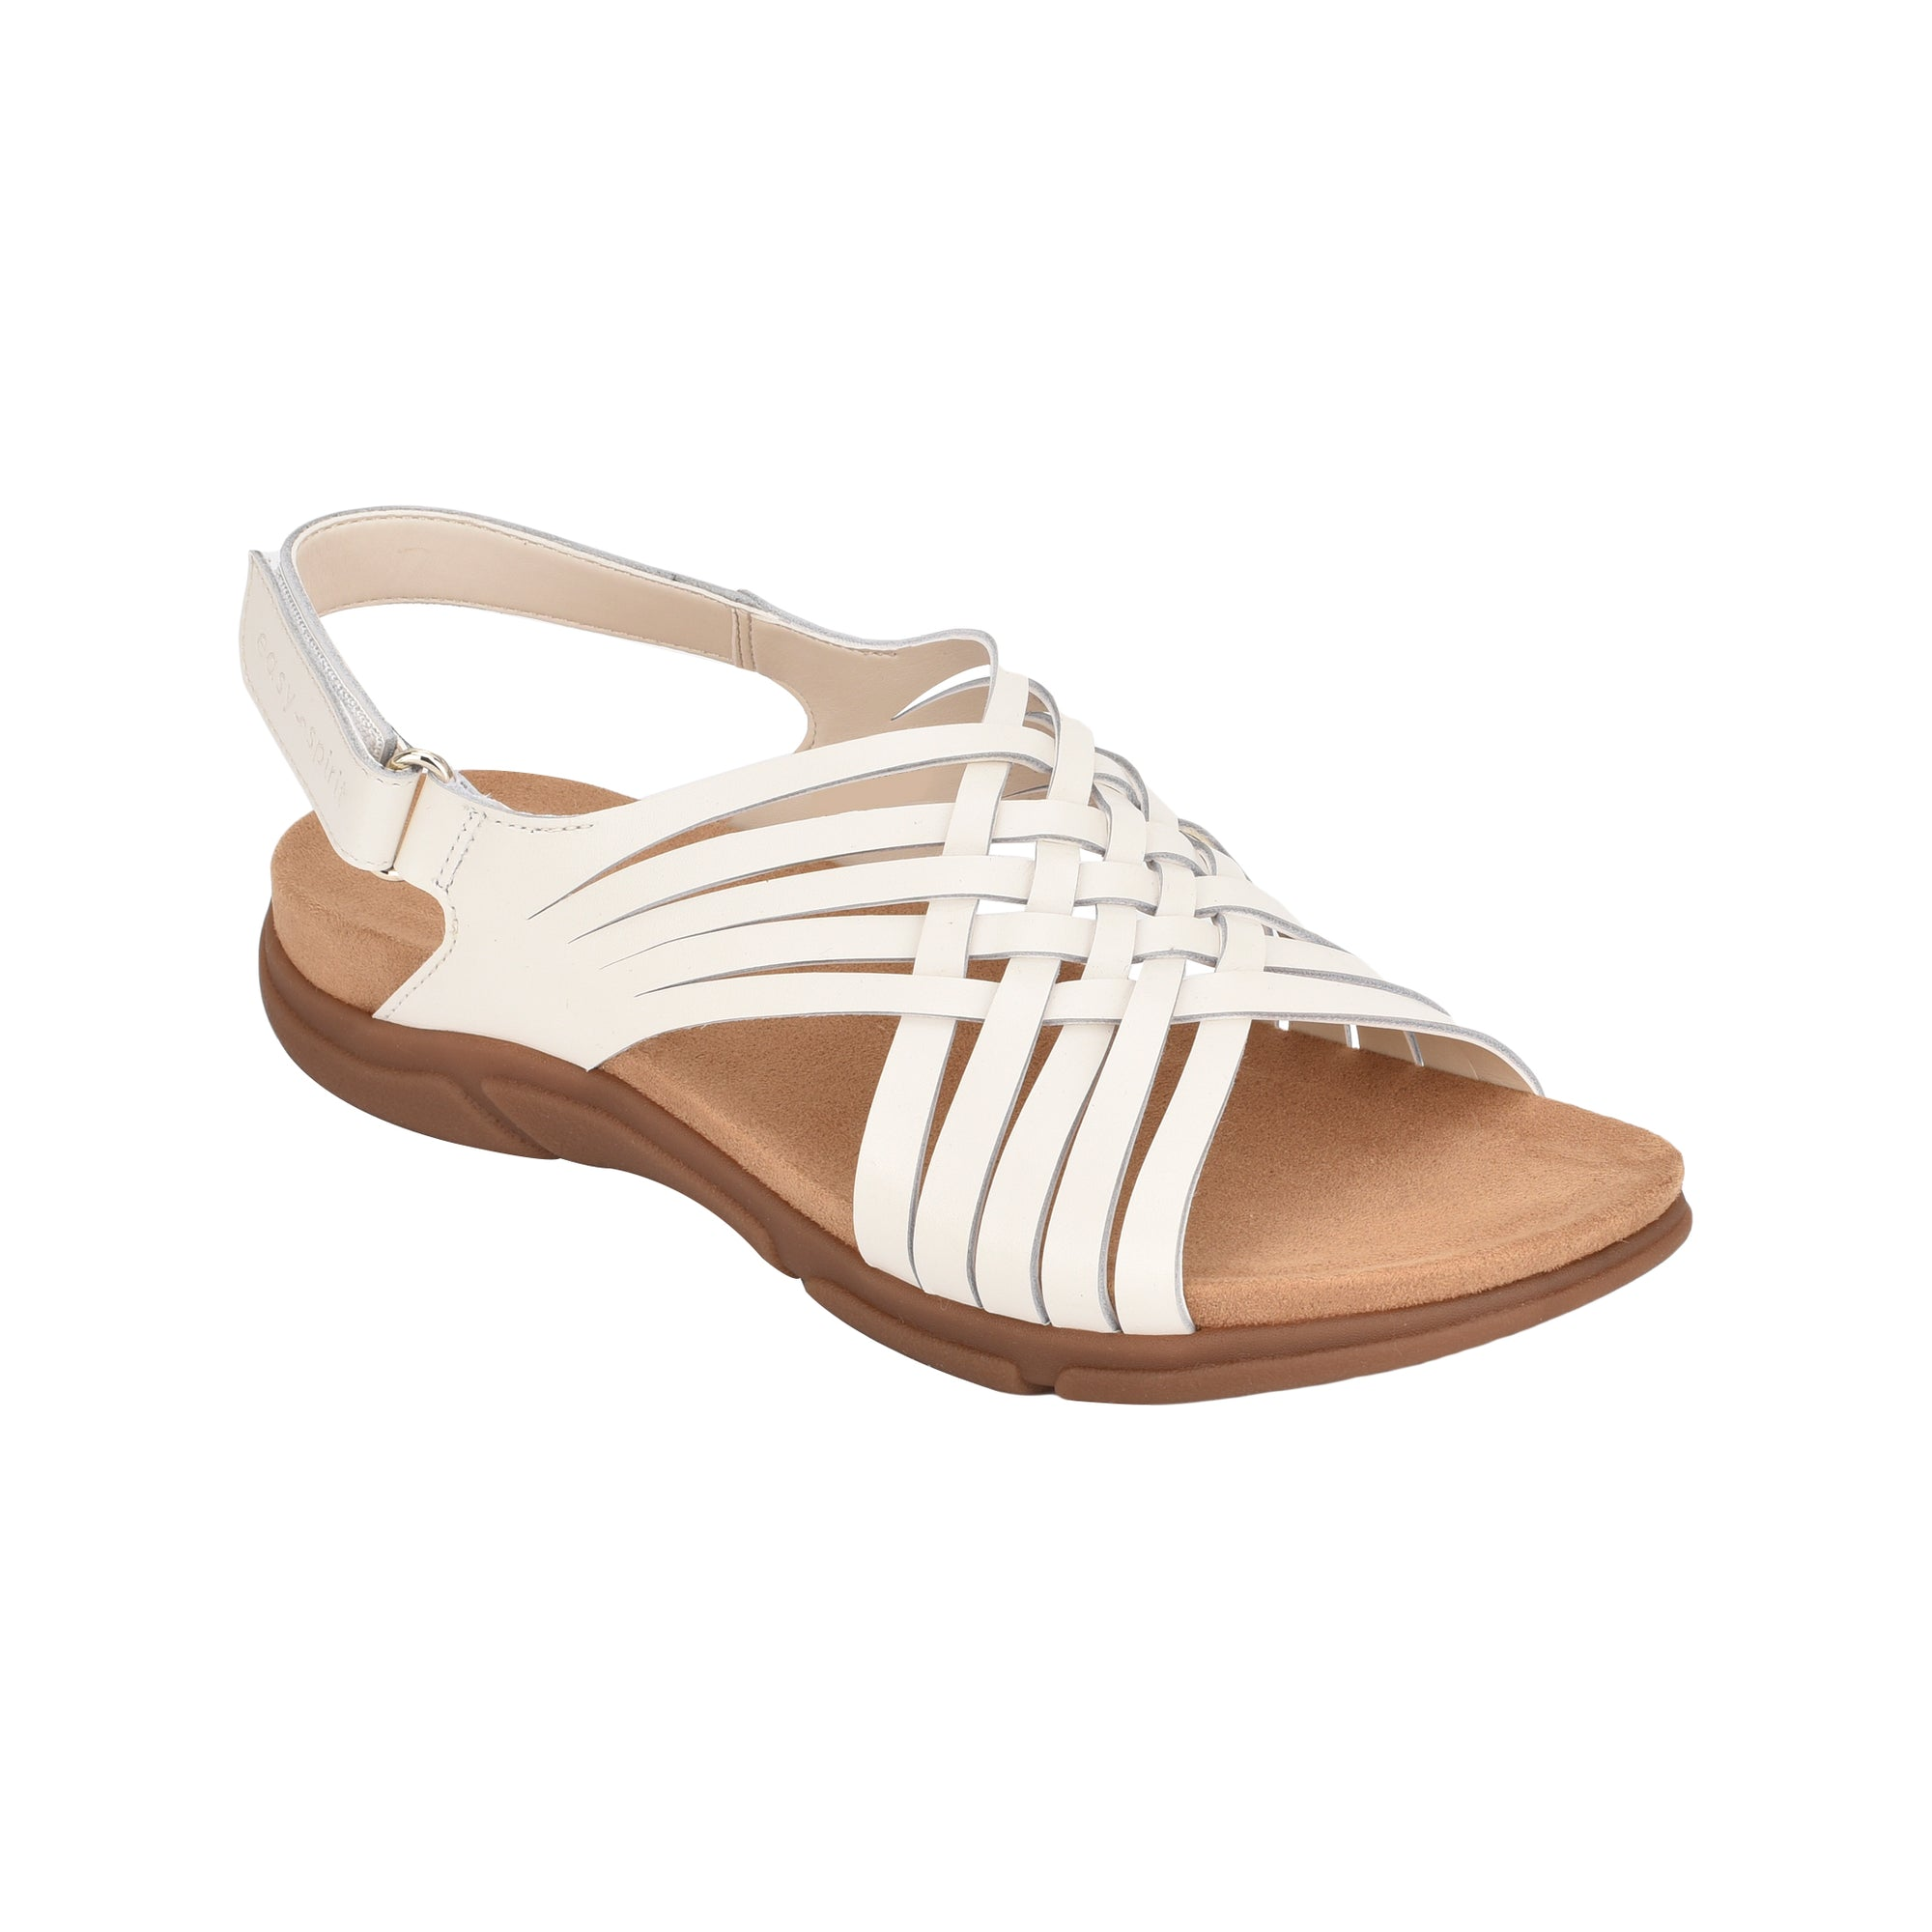 mar-sandals-in-ivory